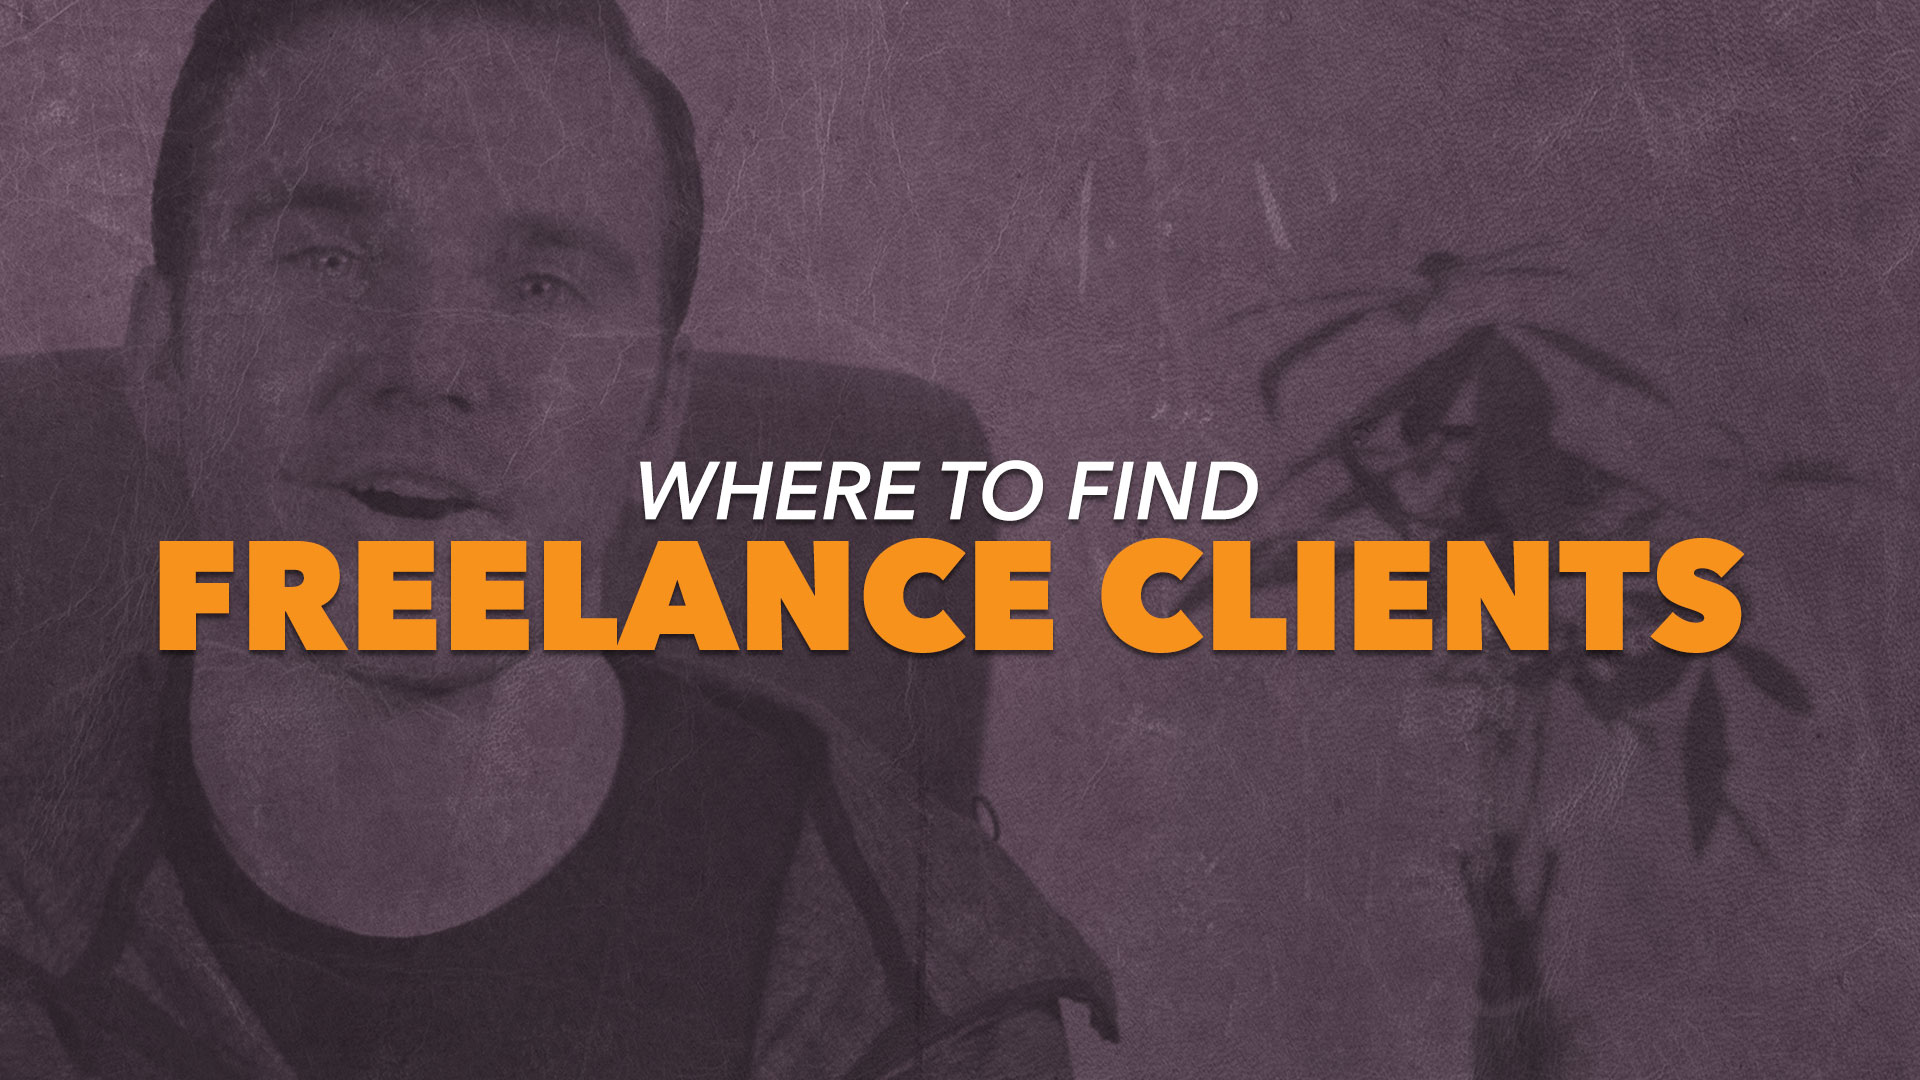 where to find freelance clients